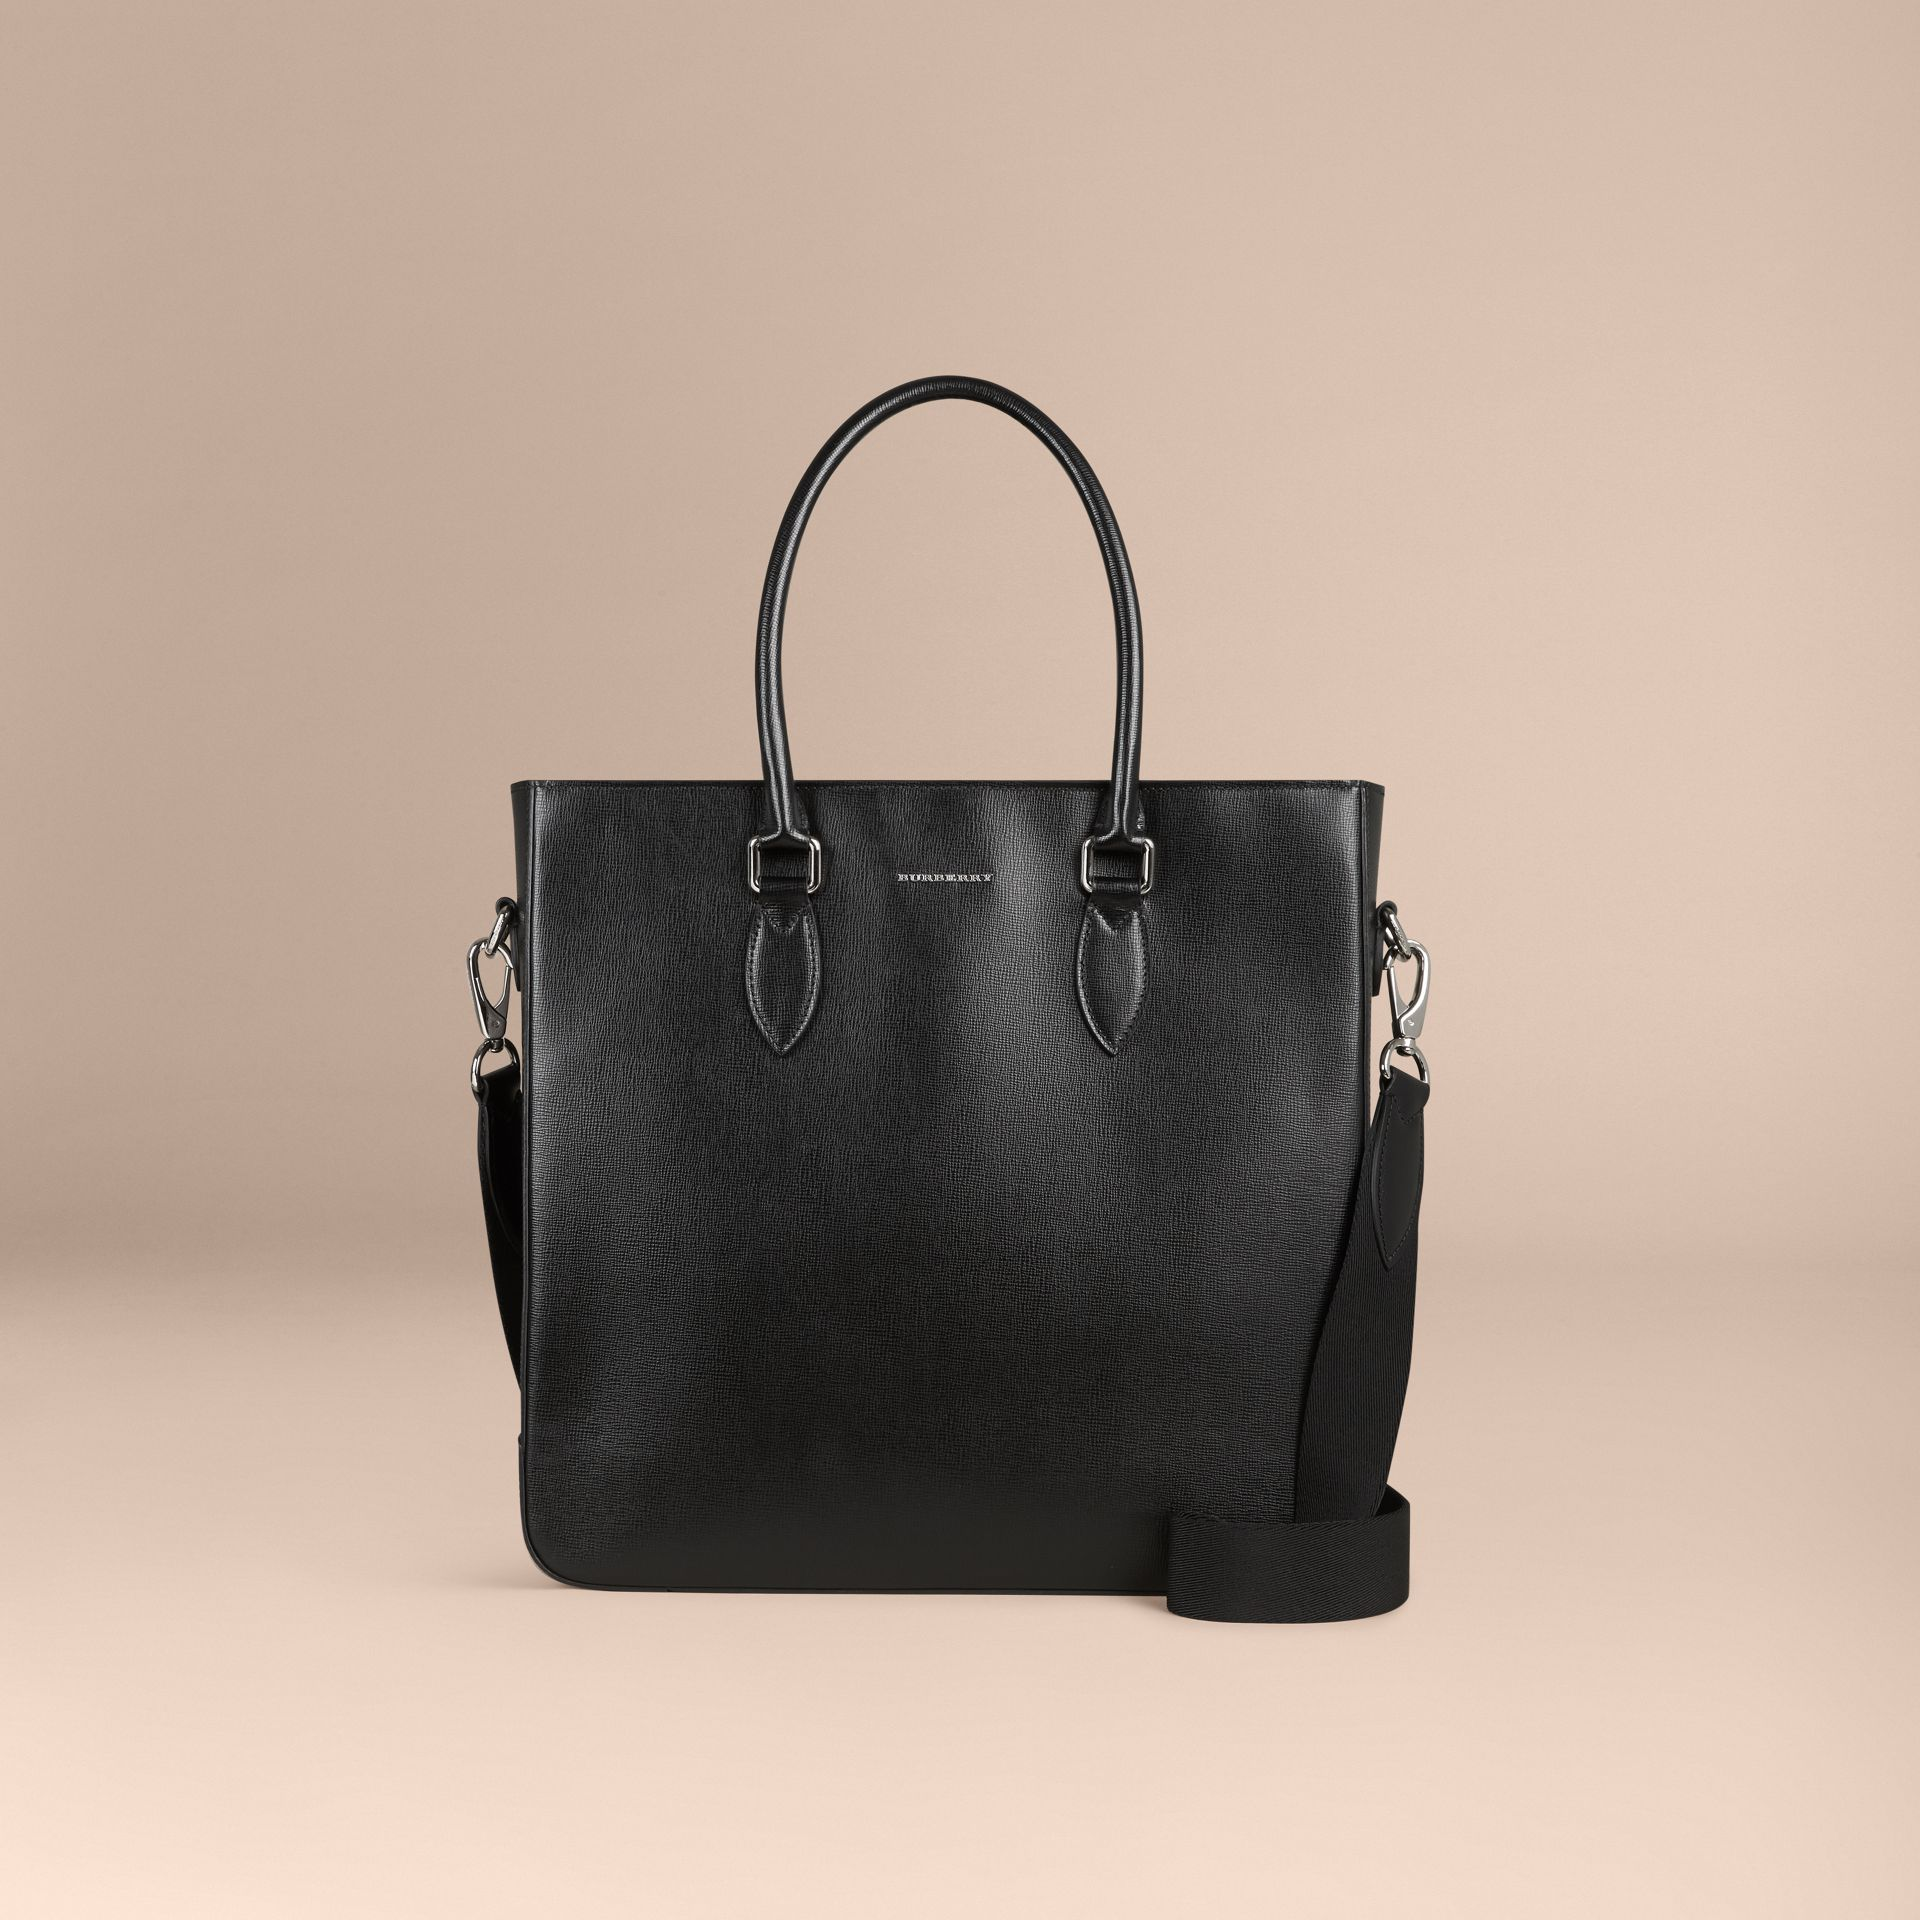 London Leather Tote Bag in Black - Men | Burberry - gallery image 8